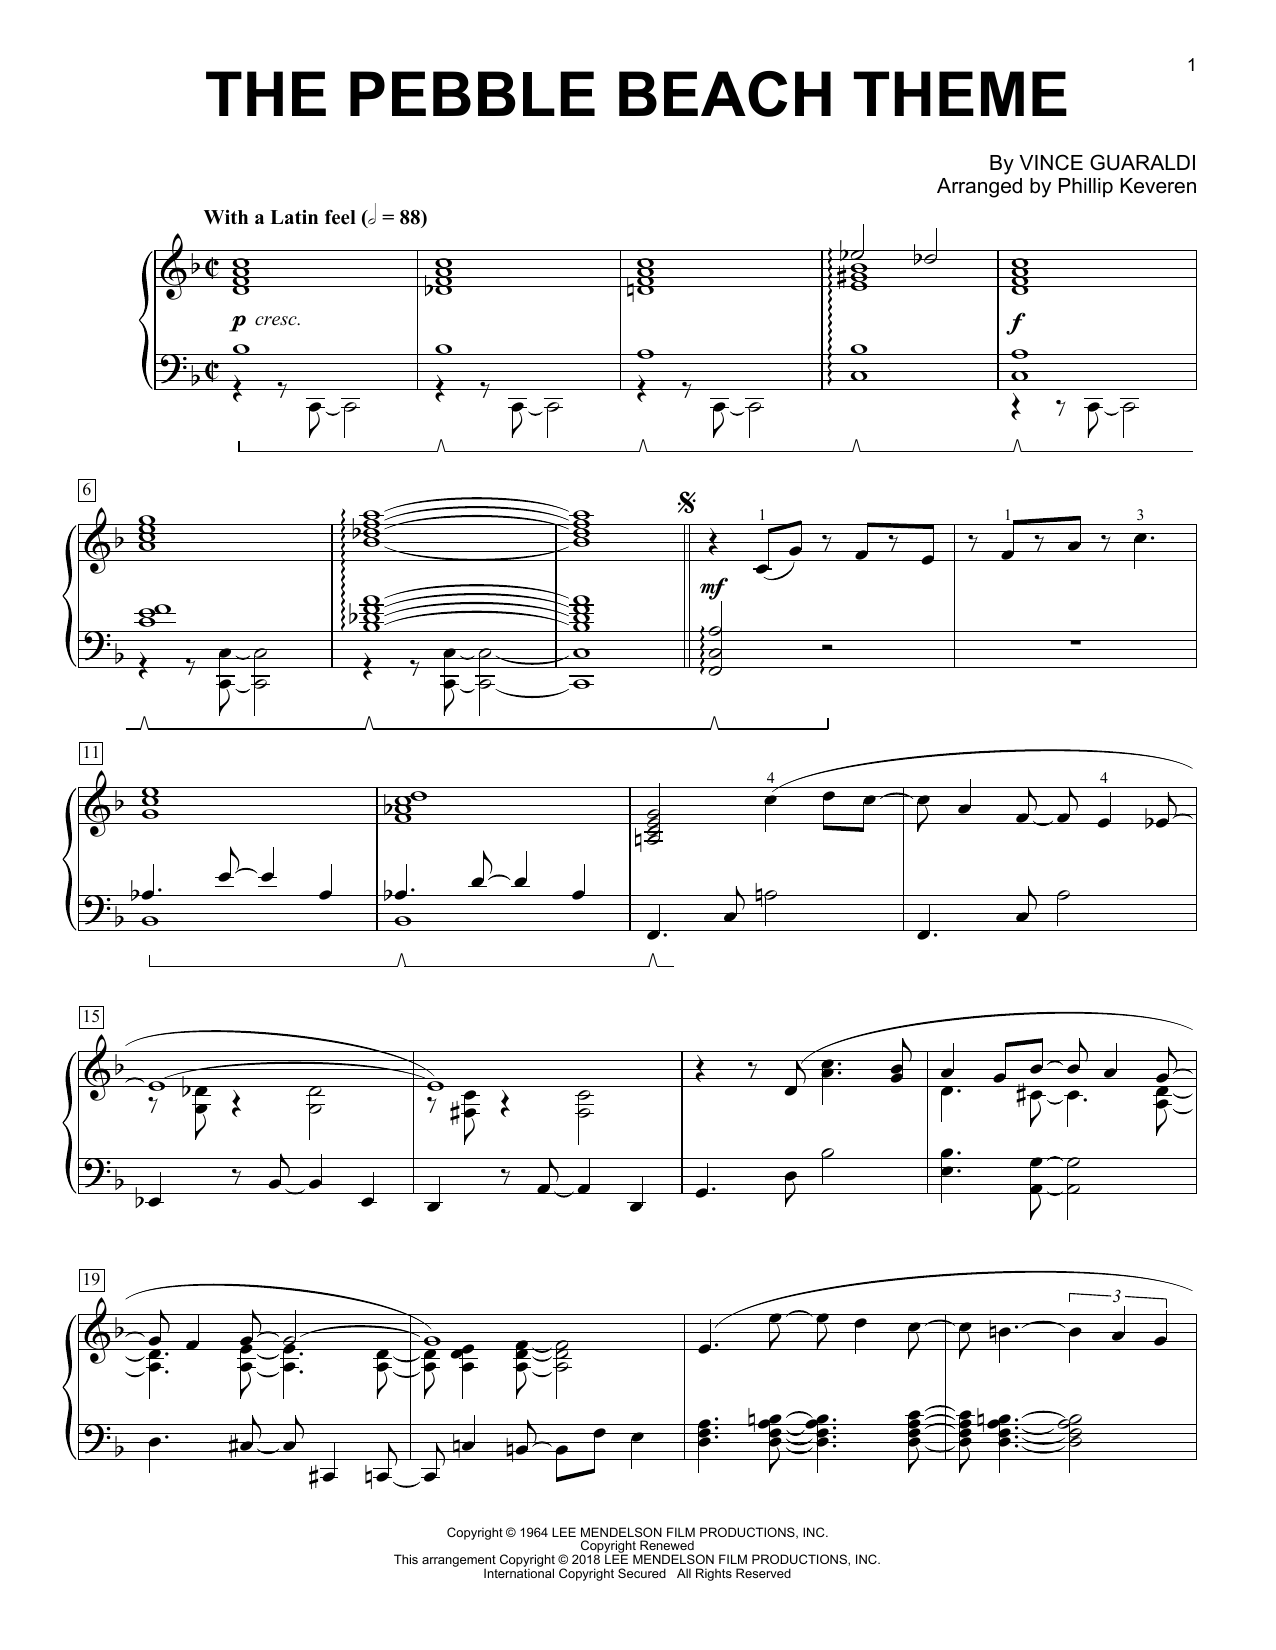 Vince Guaraldi The Pebble Beach Theme (arr. Phillip Keveren) sheet music notes and chords